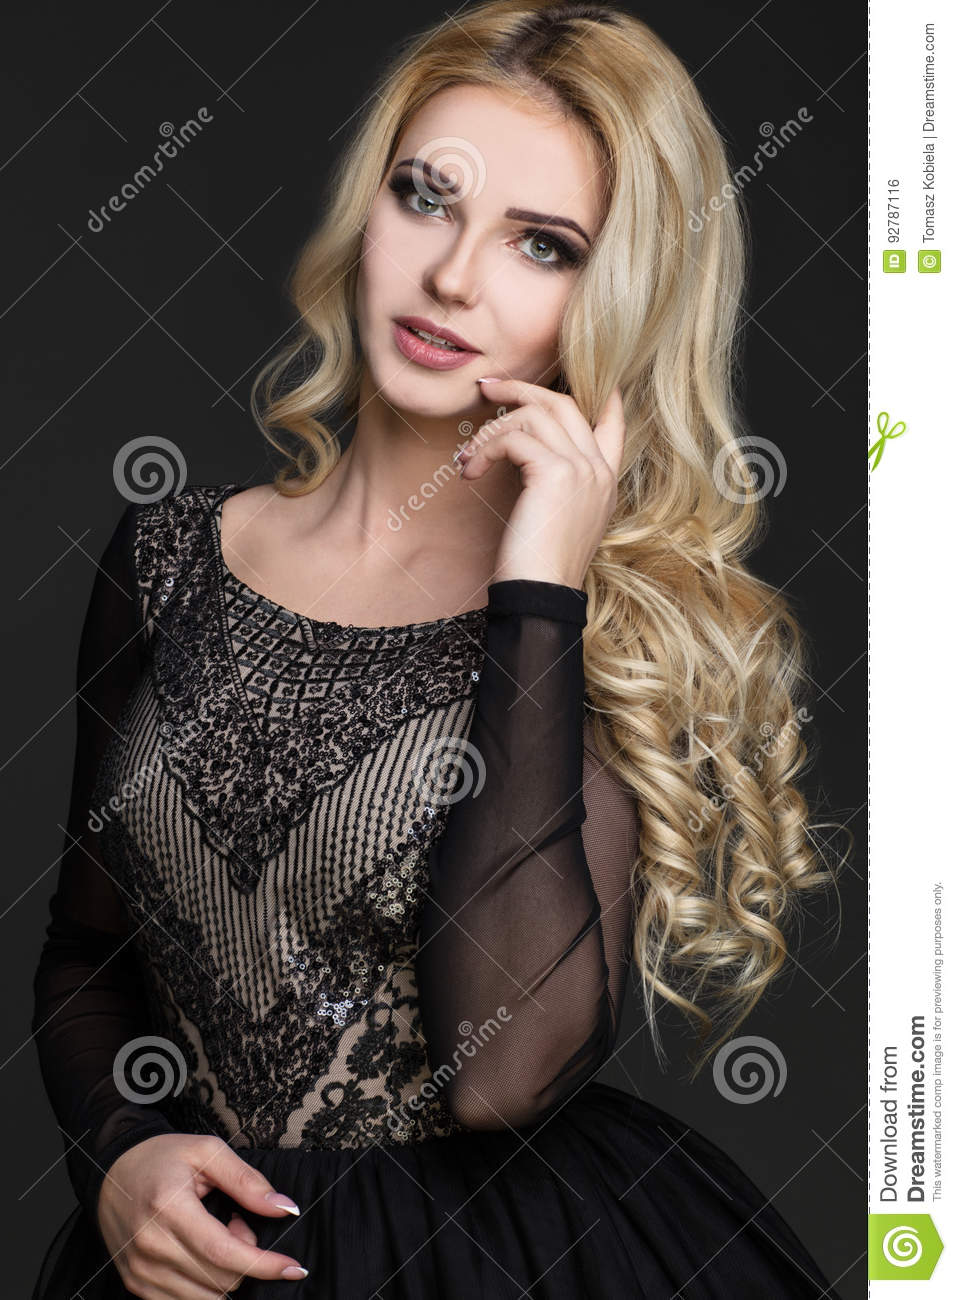 Model with blonde hair wearing dress with pattern.